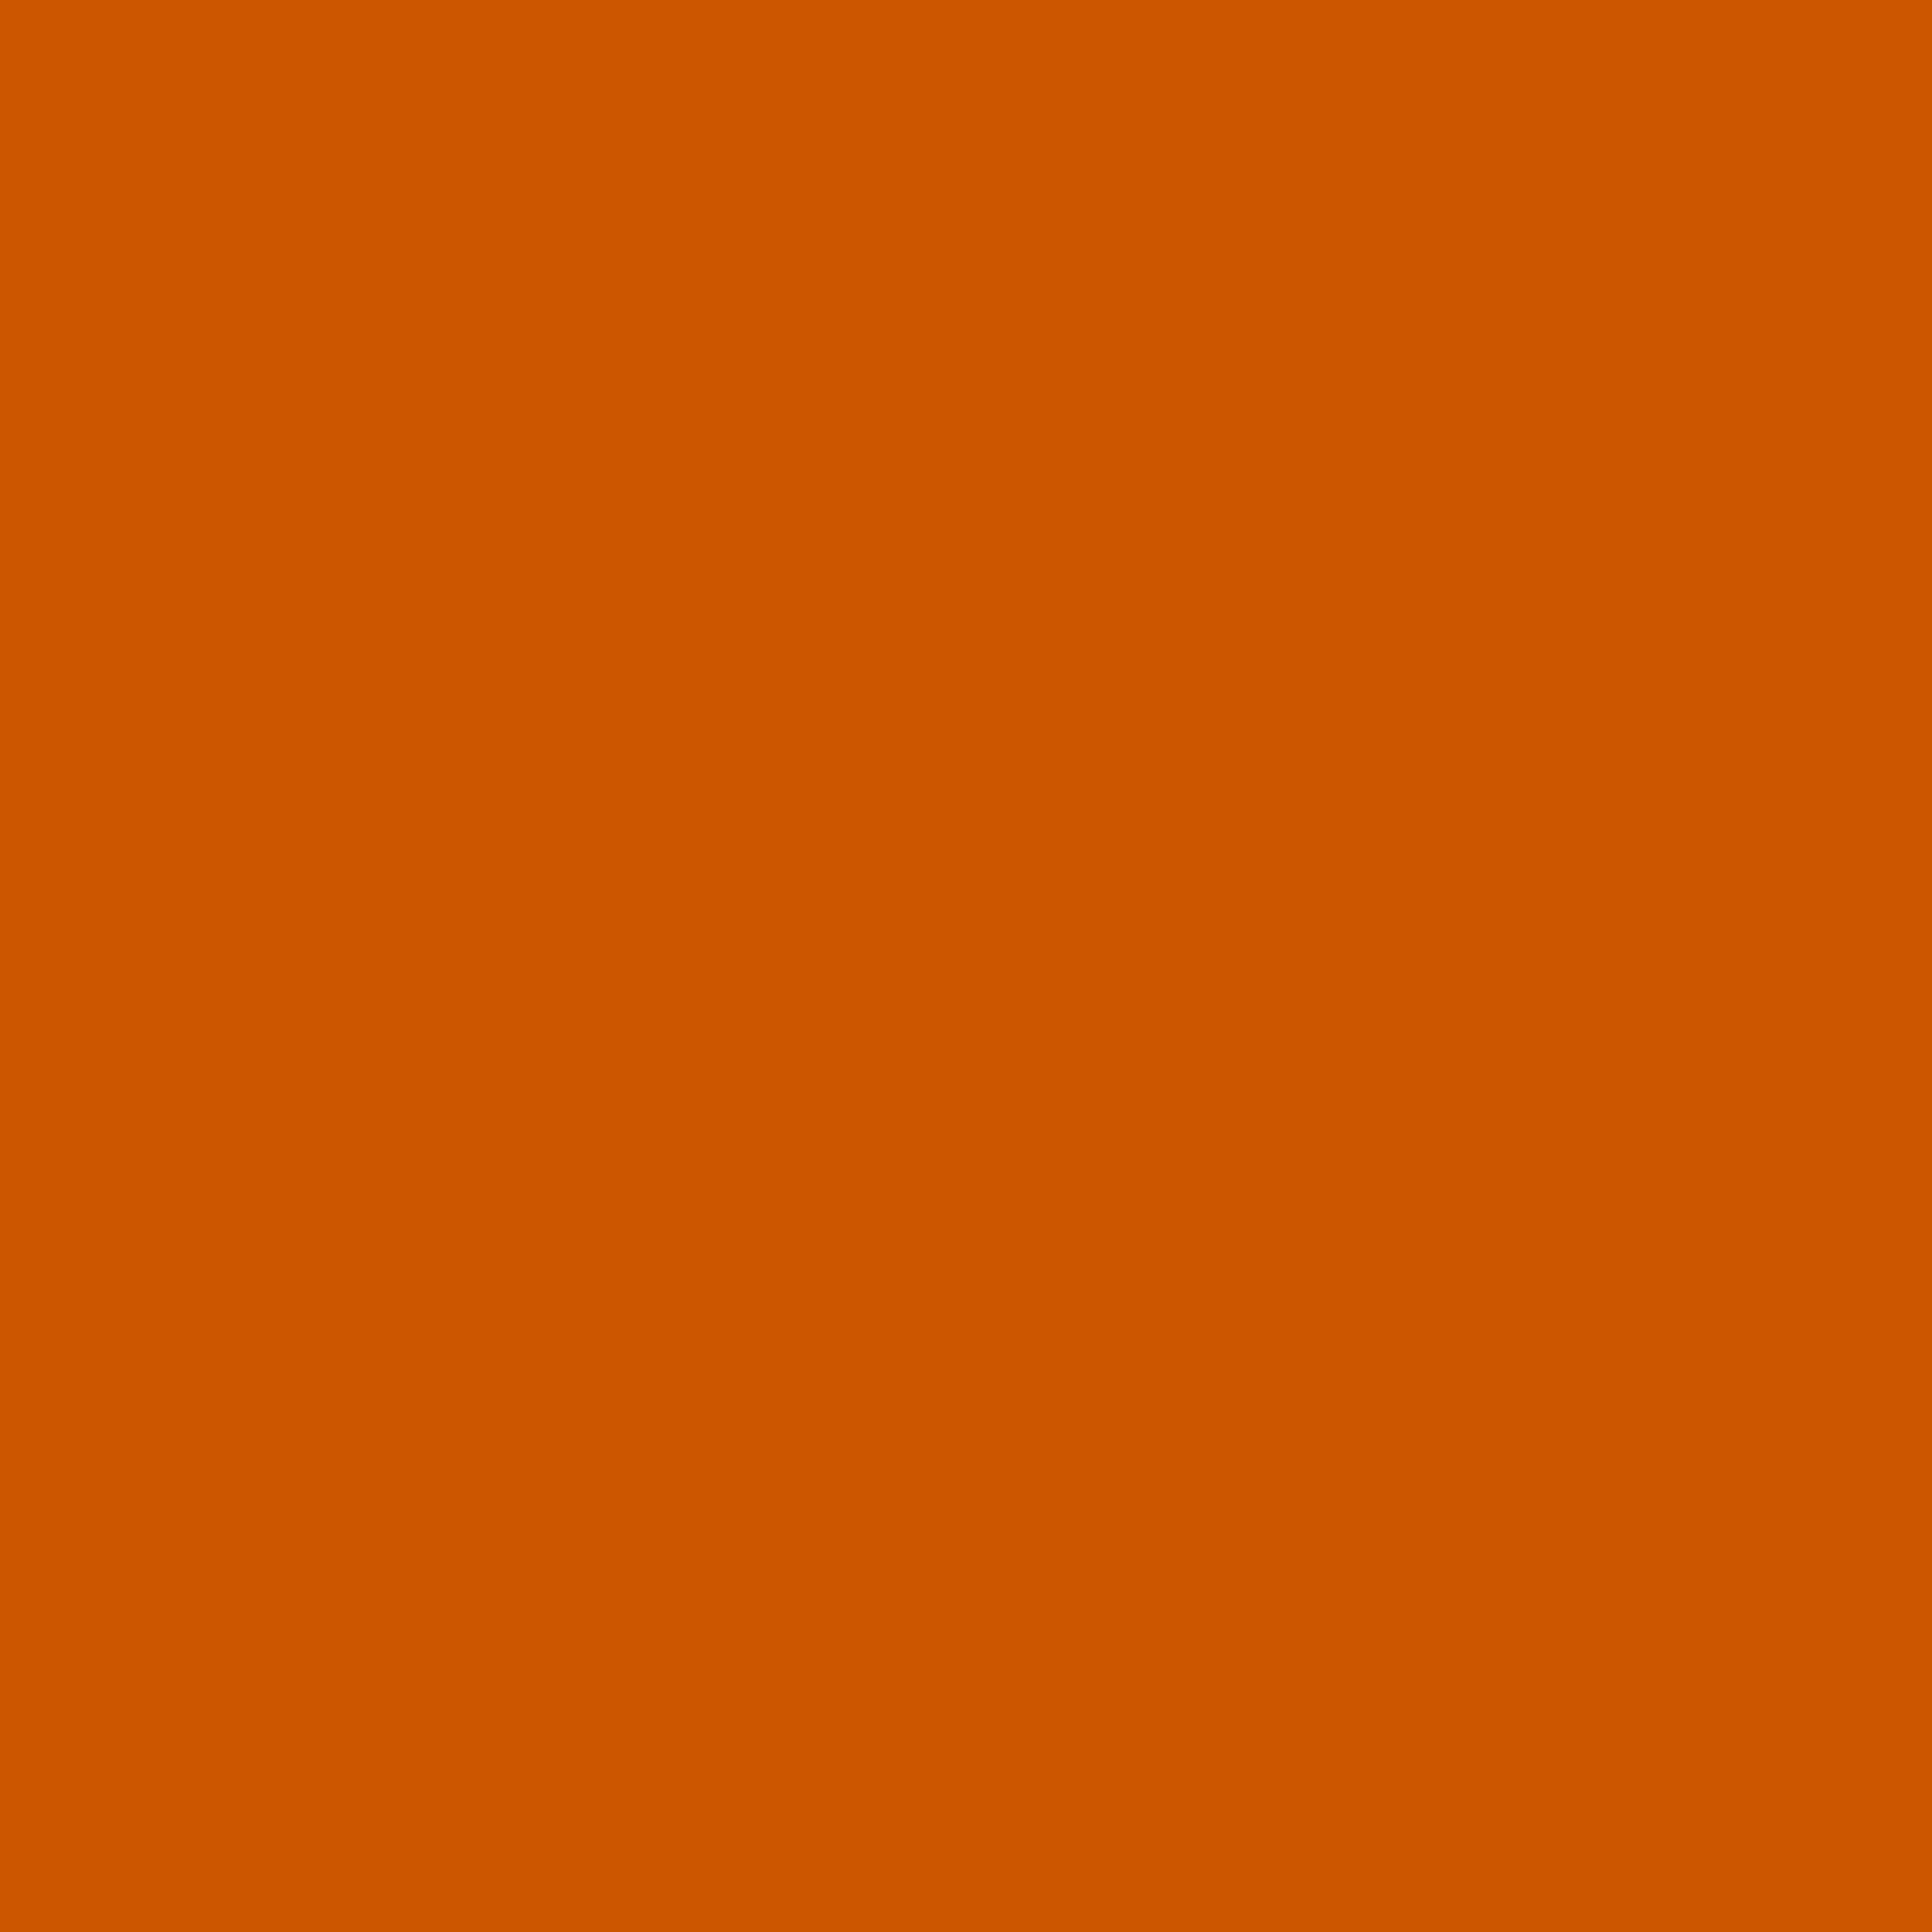 3600x3600 Burnt Orange Solid Color Background